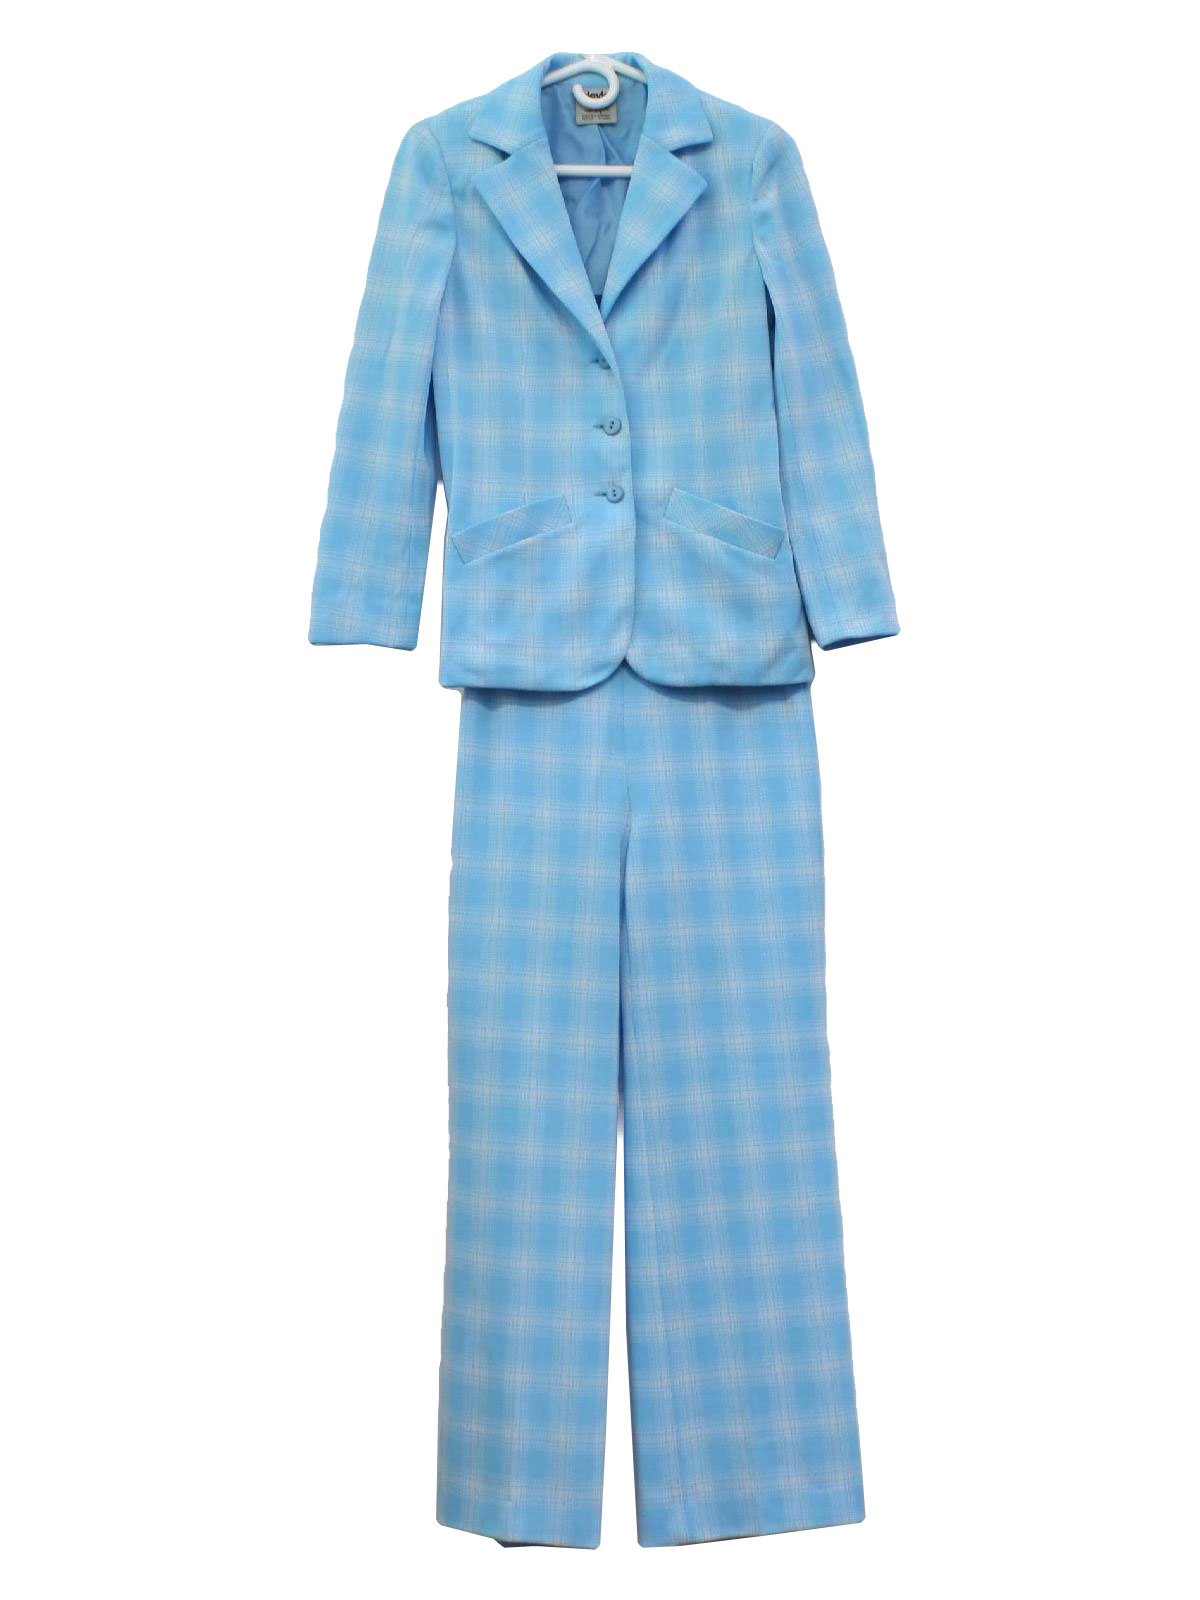 70s Vintage Bleyle By Hooper Leisure Suit Early 70s